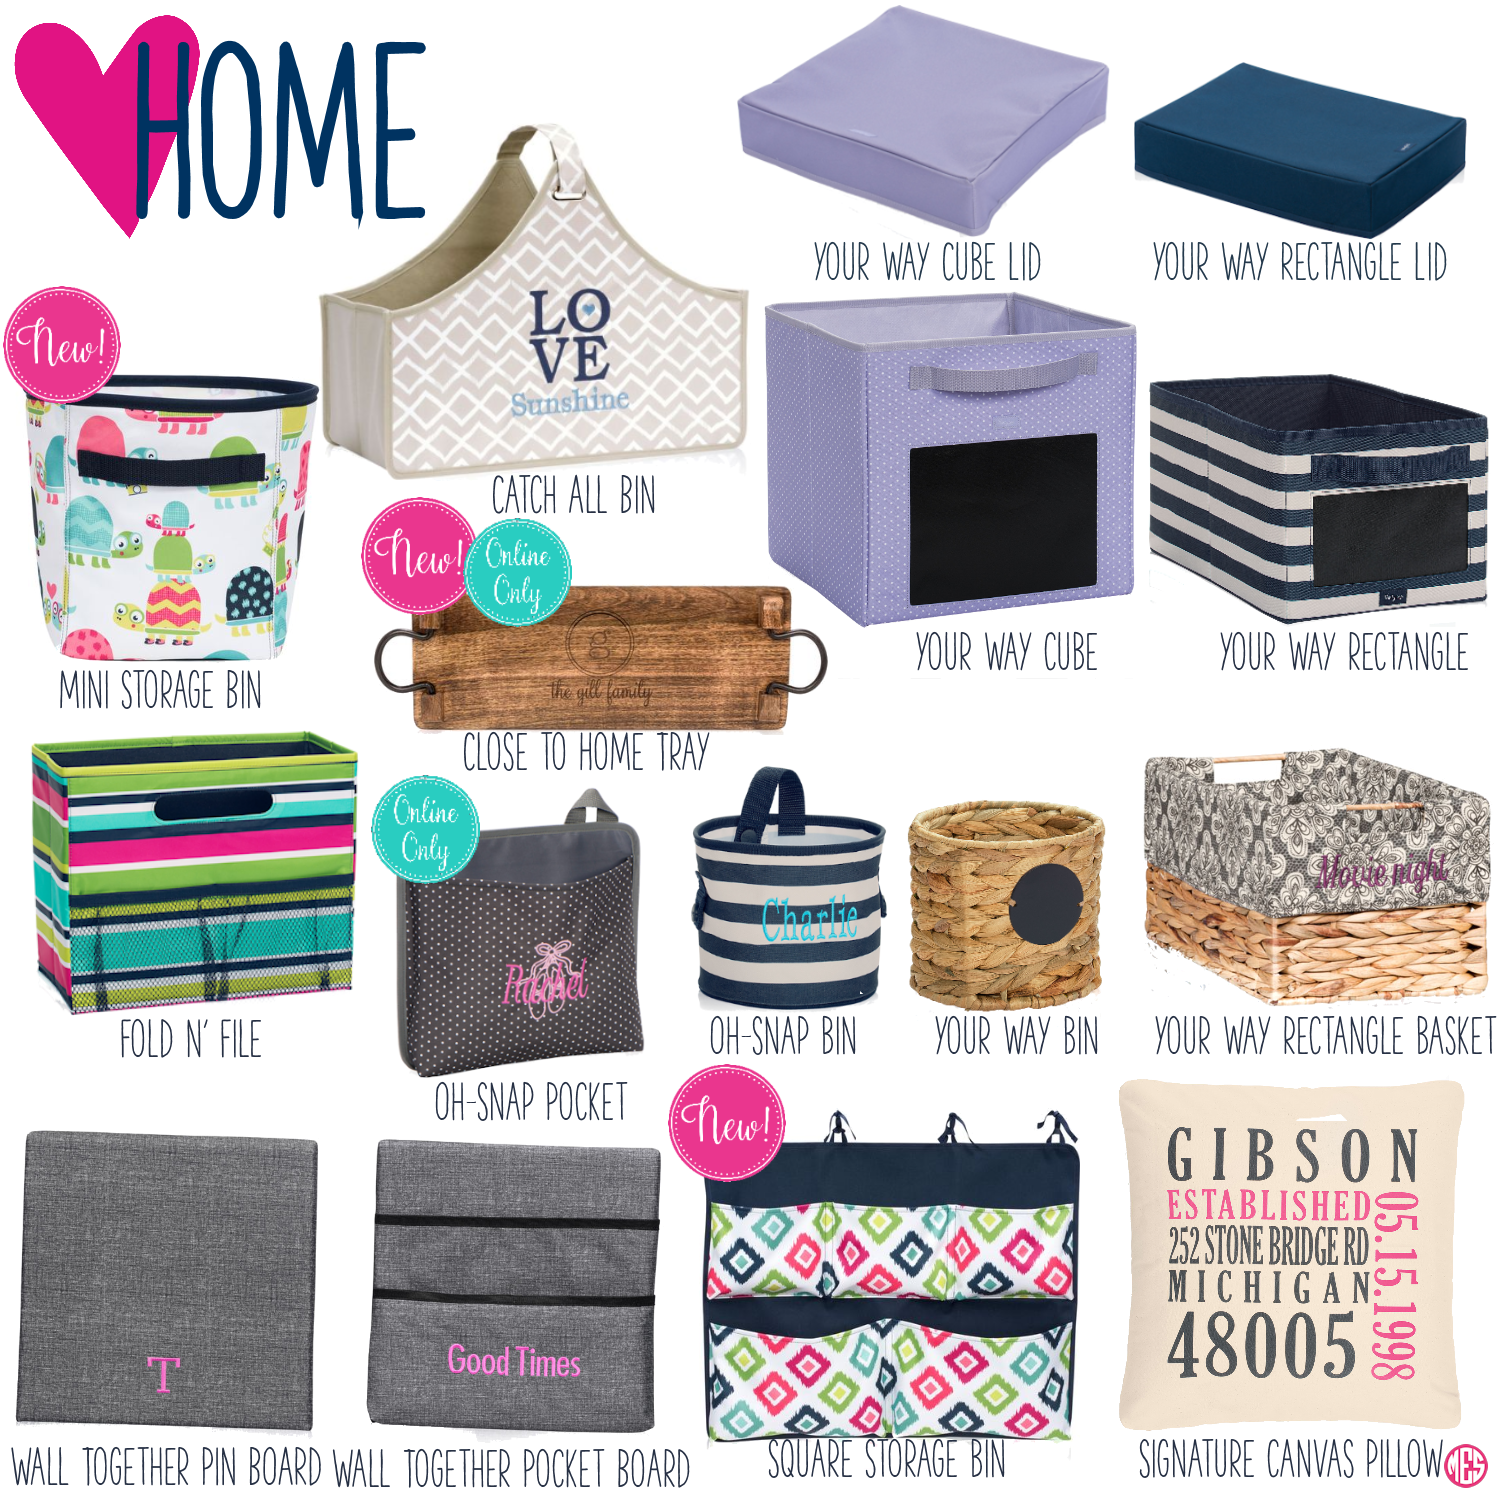 Oh snap bin ideas - Thirty One Home